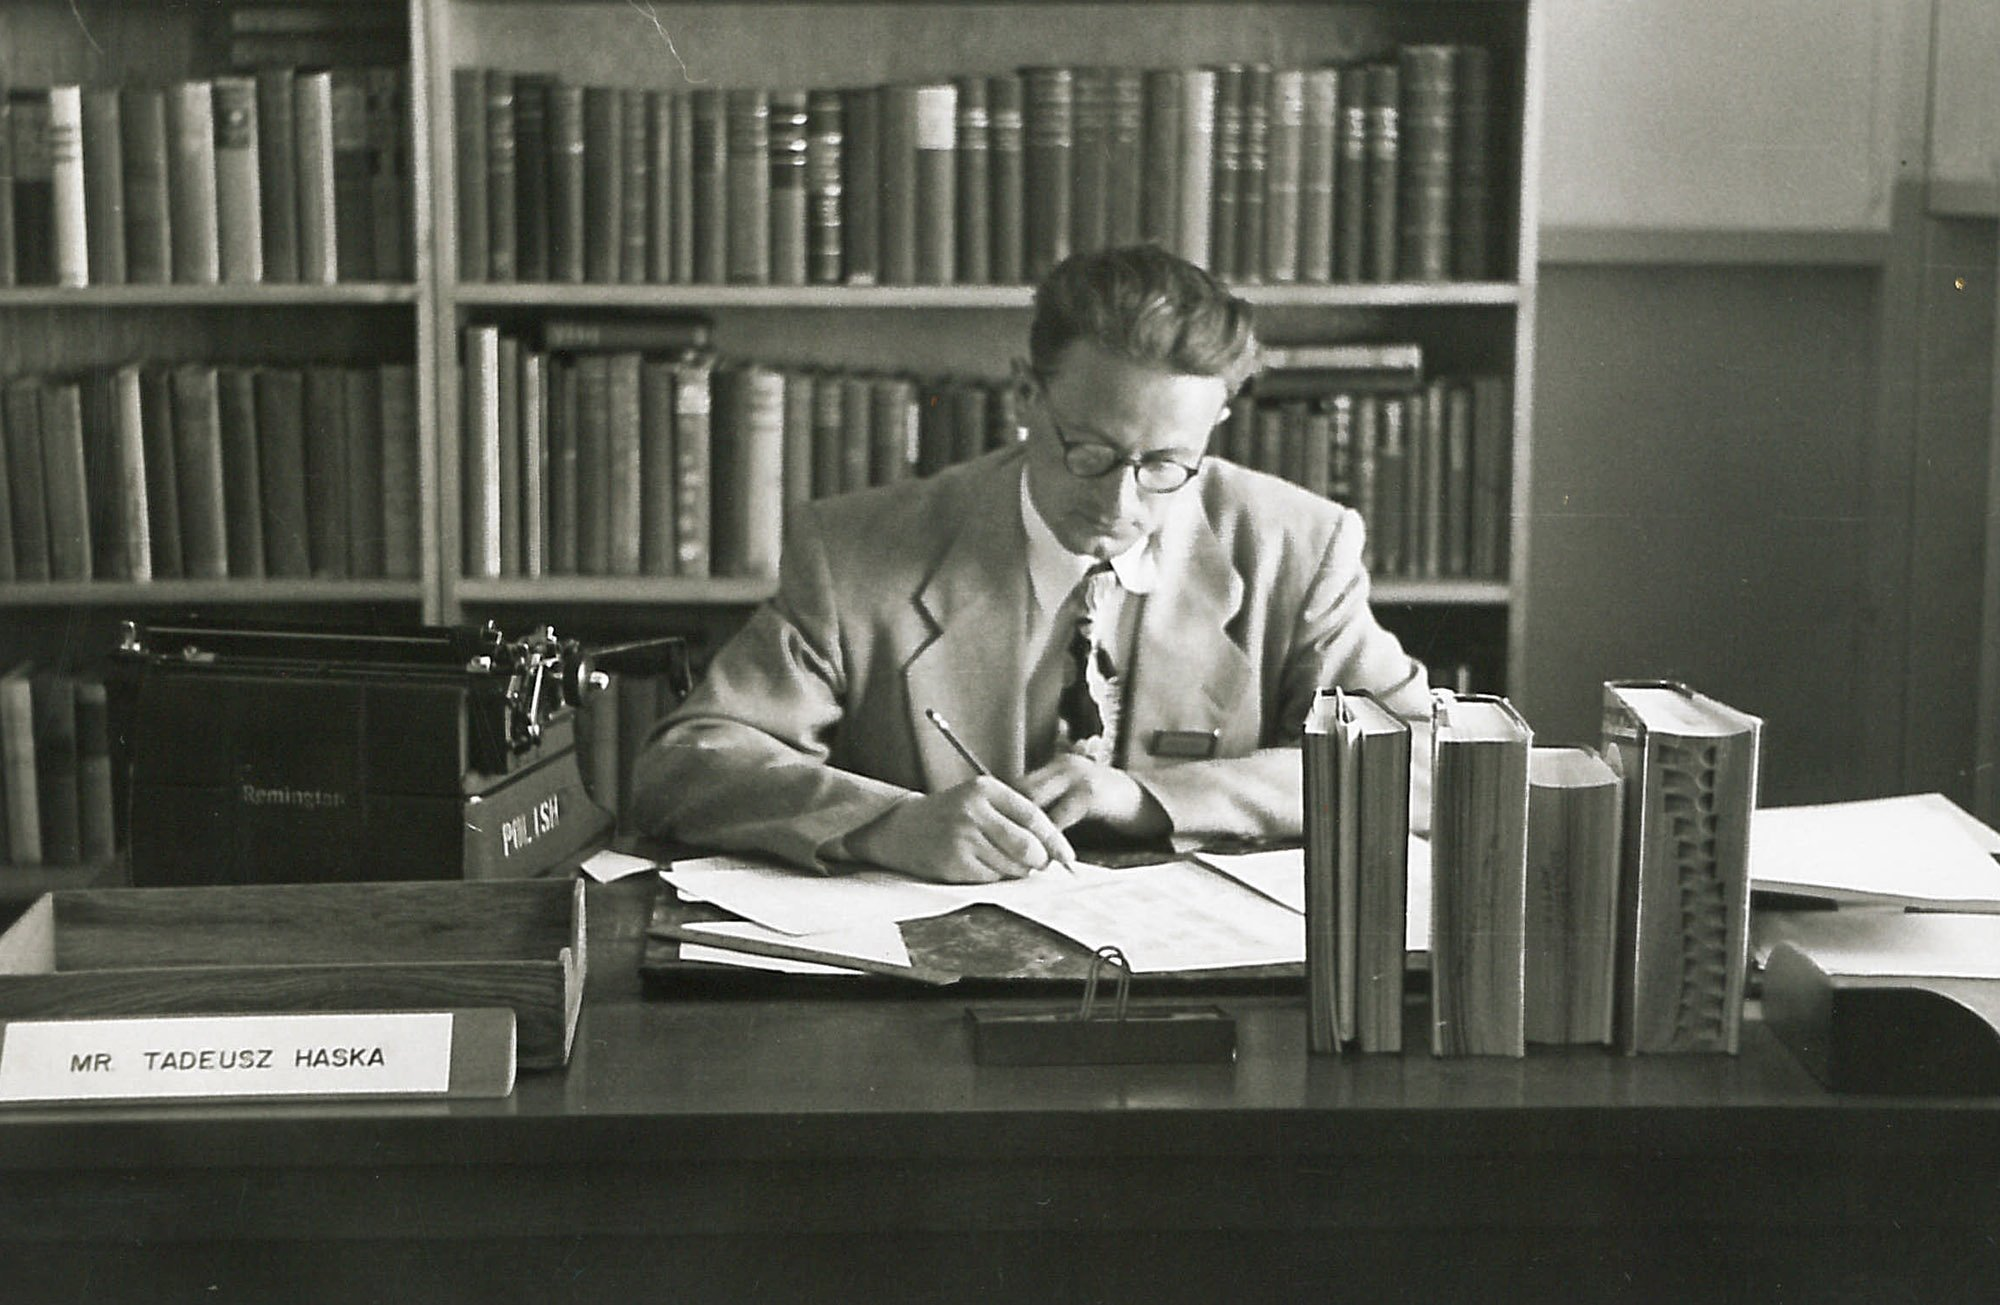 Tadeusz Haska working as an instructor at the Army Language School in 1951